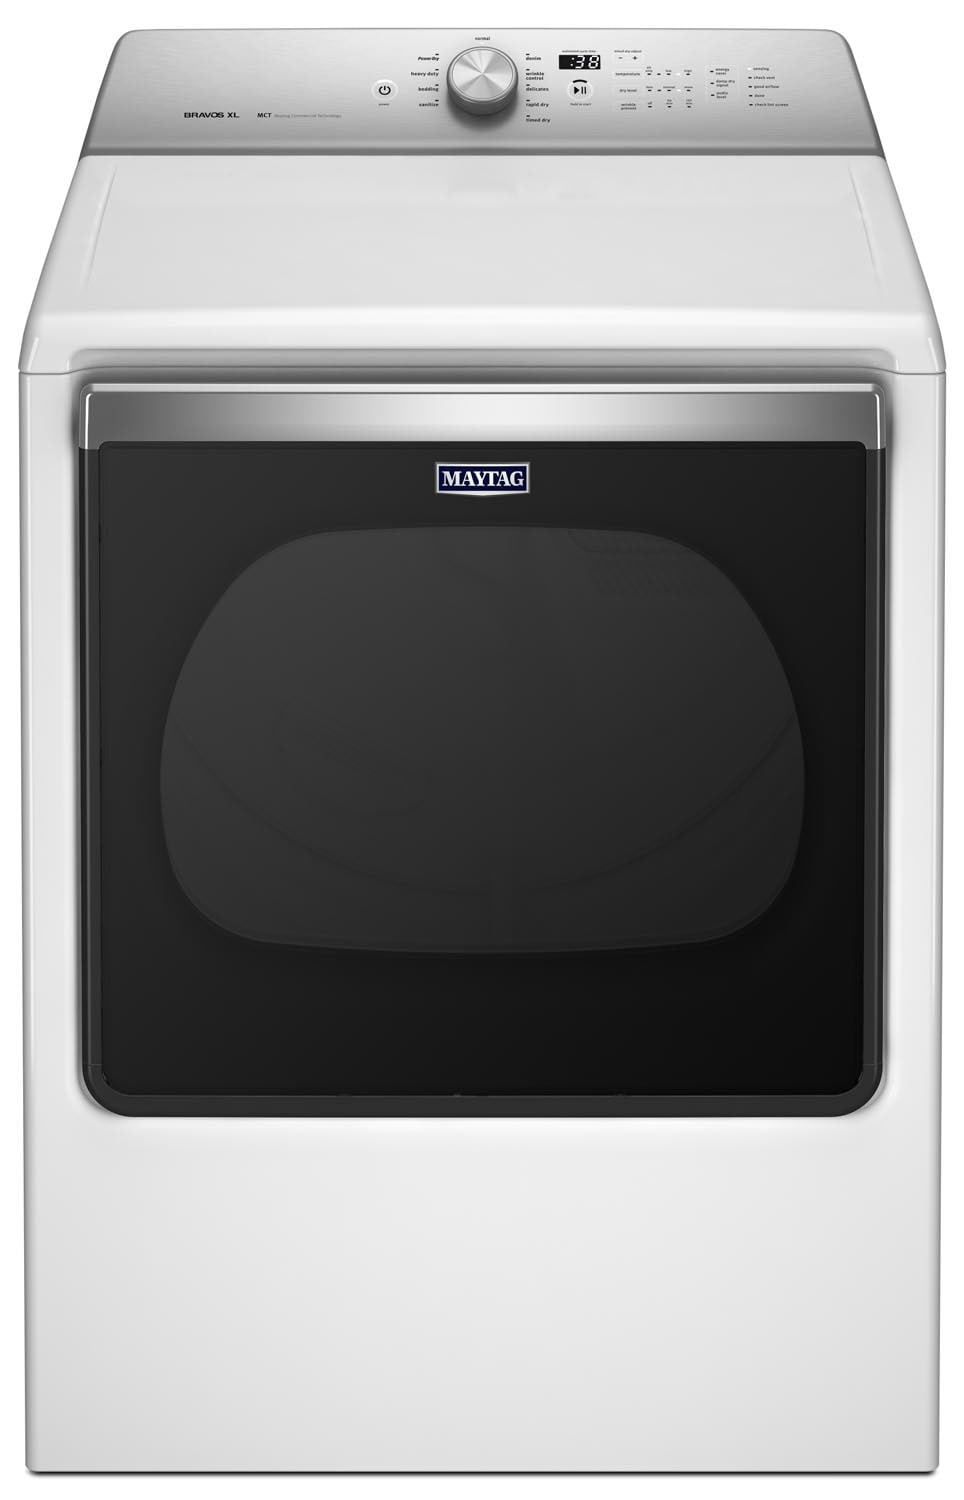 Washers and Dryers - Maytag 8.8 Cu. Ft. Gas Dryer – MGDB835DW